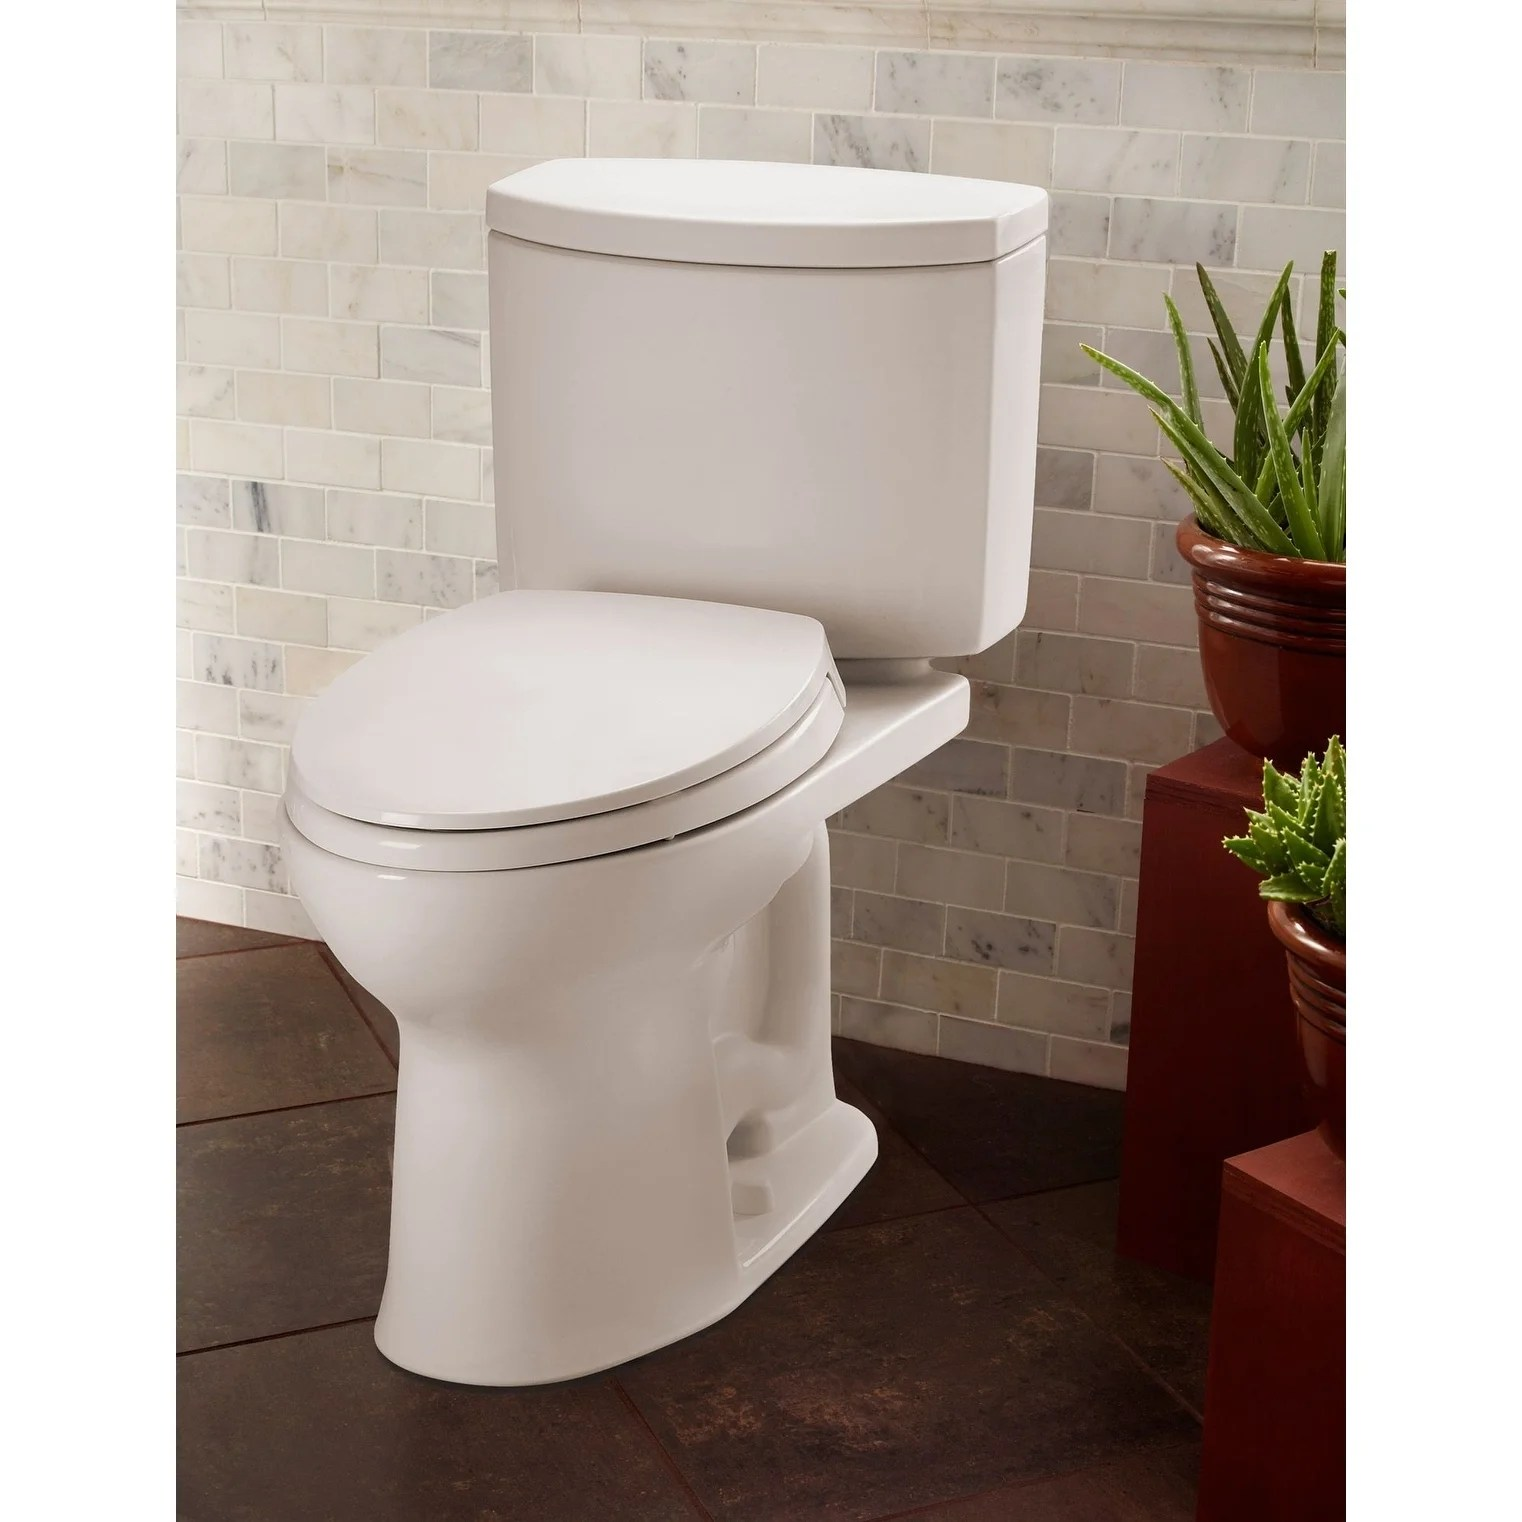 Toilette Toto Toto Drake Ii Two Piece Elongated 1 28 Gpf Universal Height Toilet With Cefiontect Cotton White Cst454cefg 01